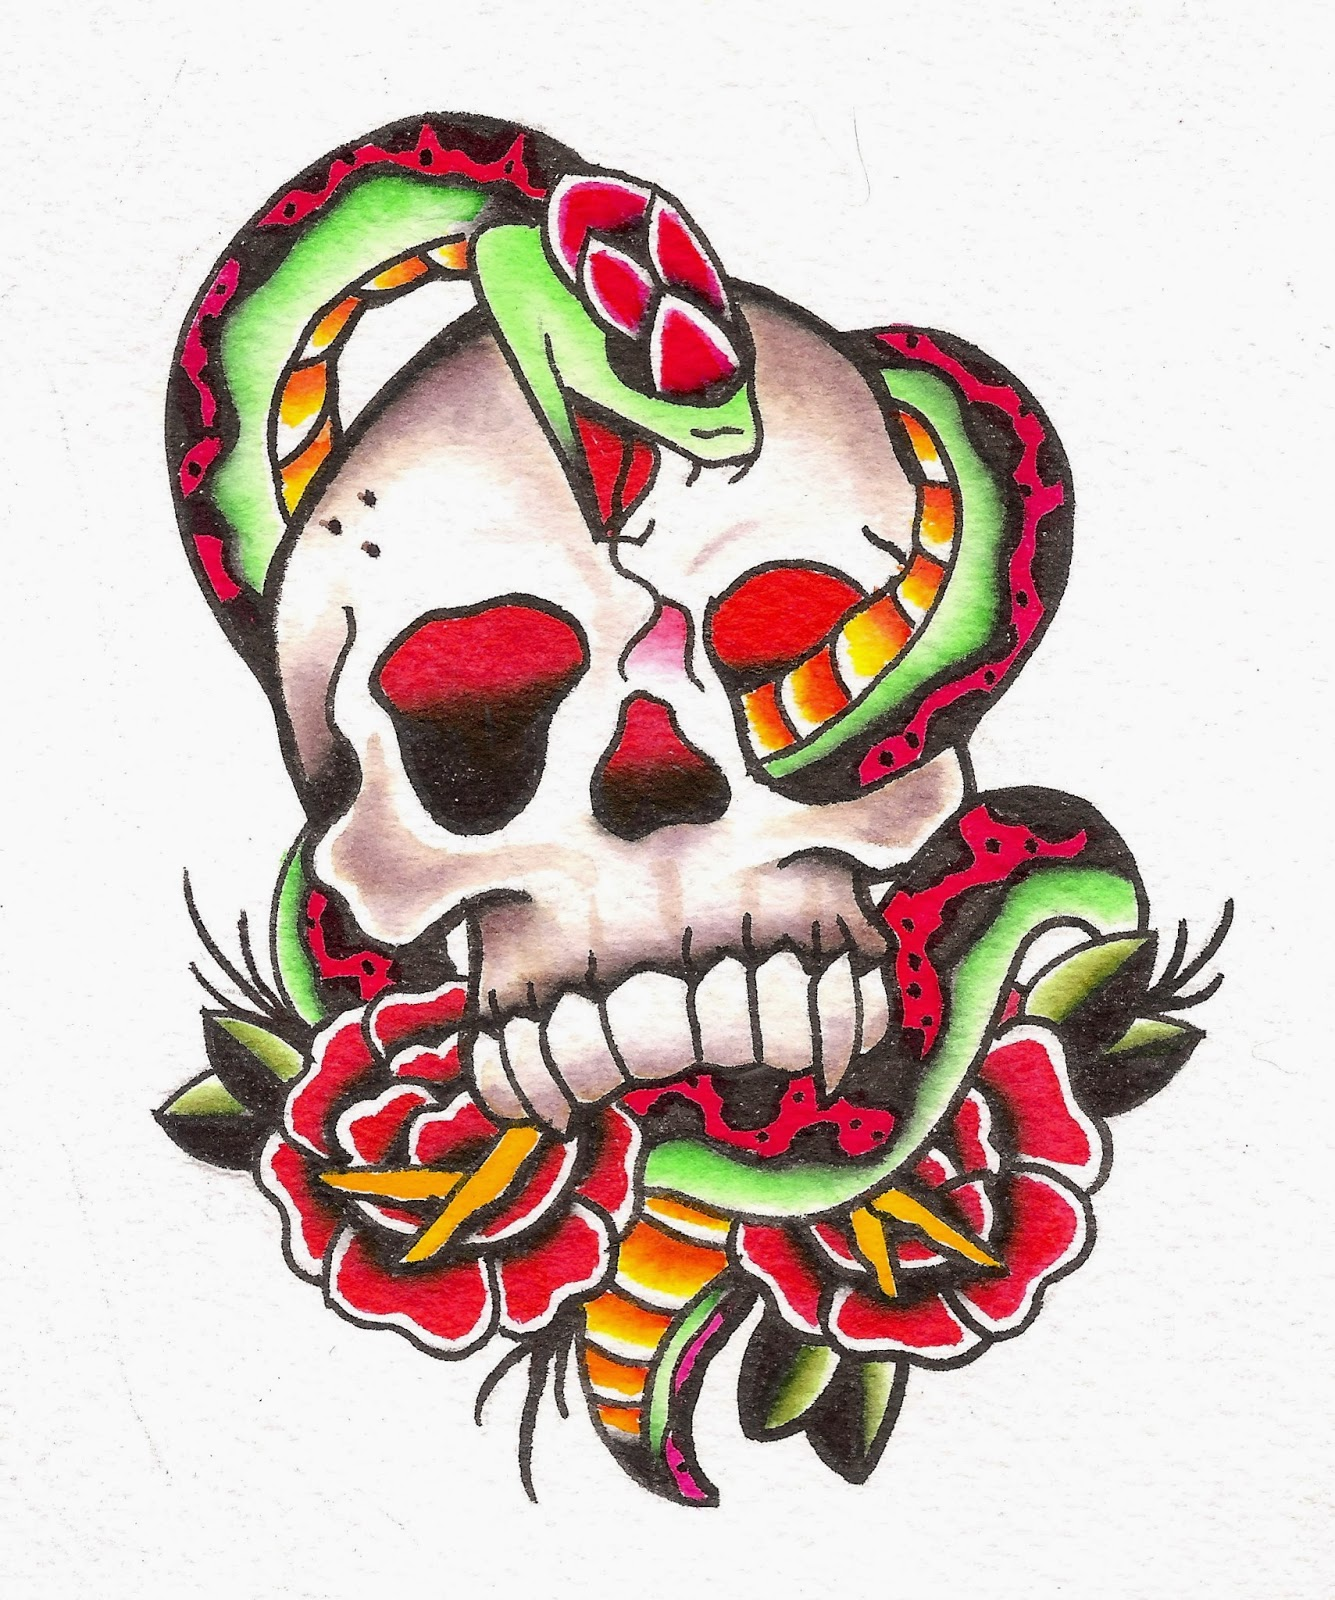 Snake Rose n Dagger Tattoo Design photo - 1